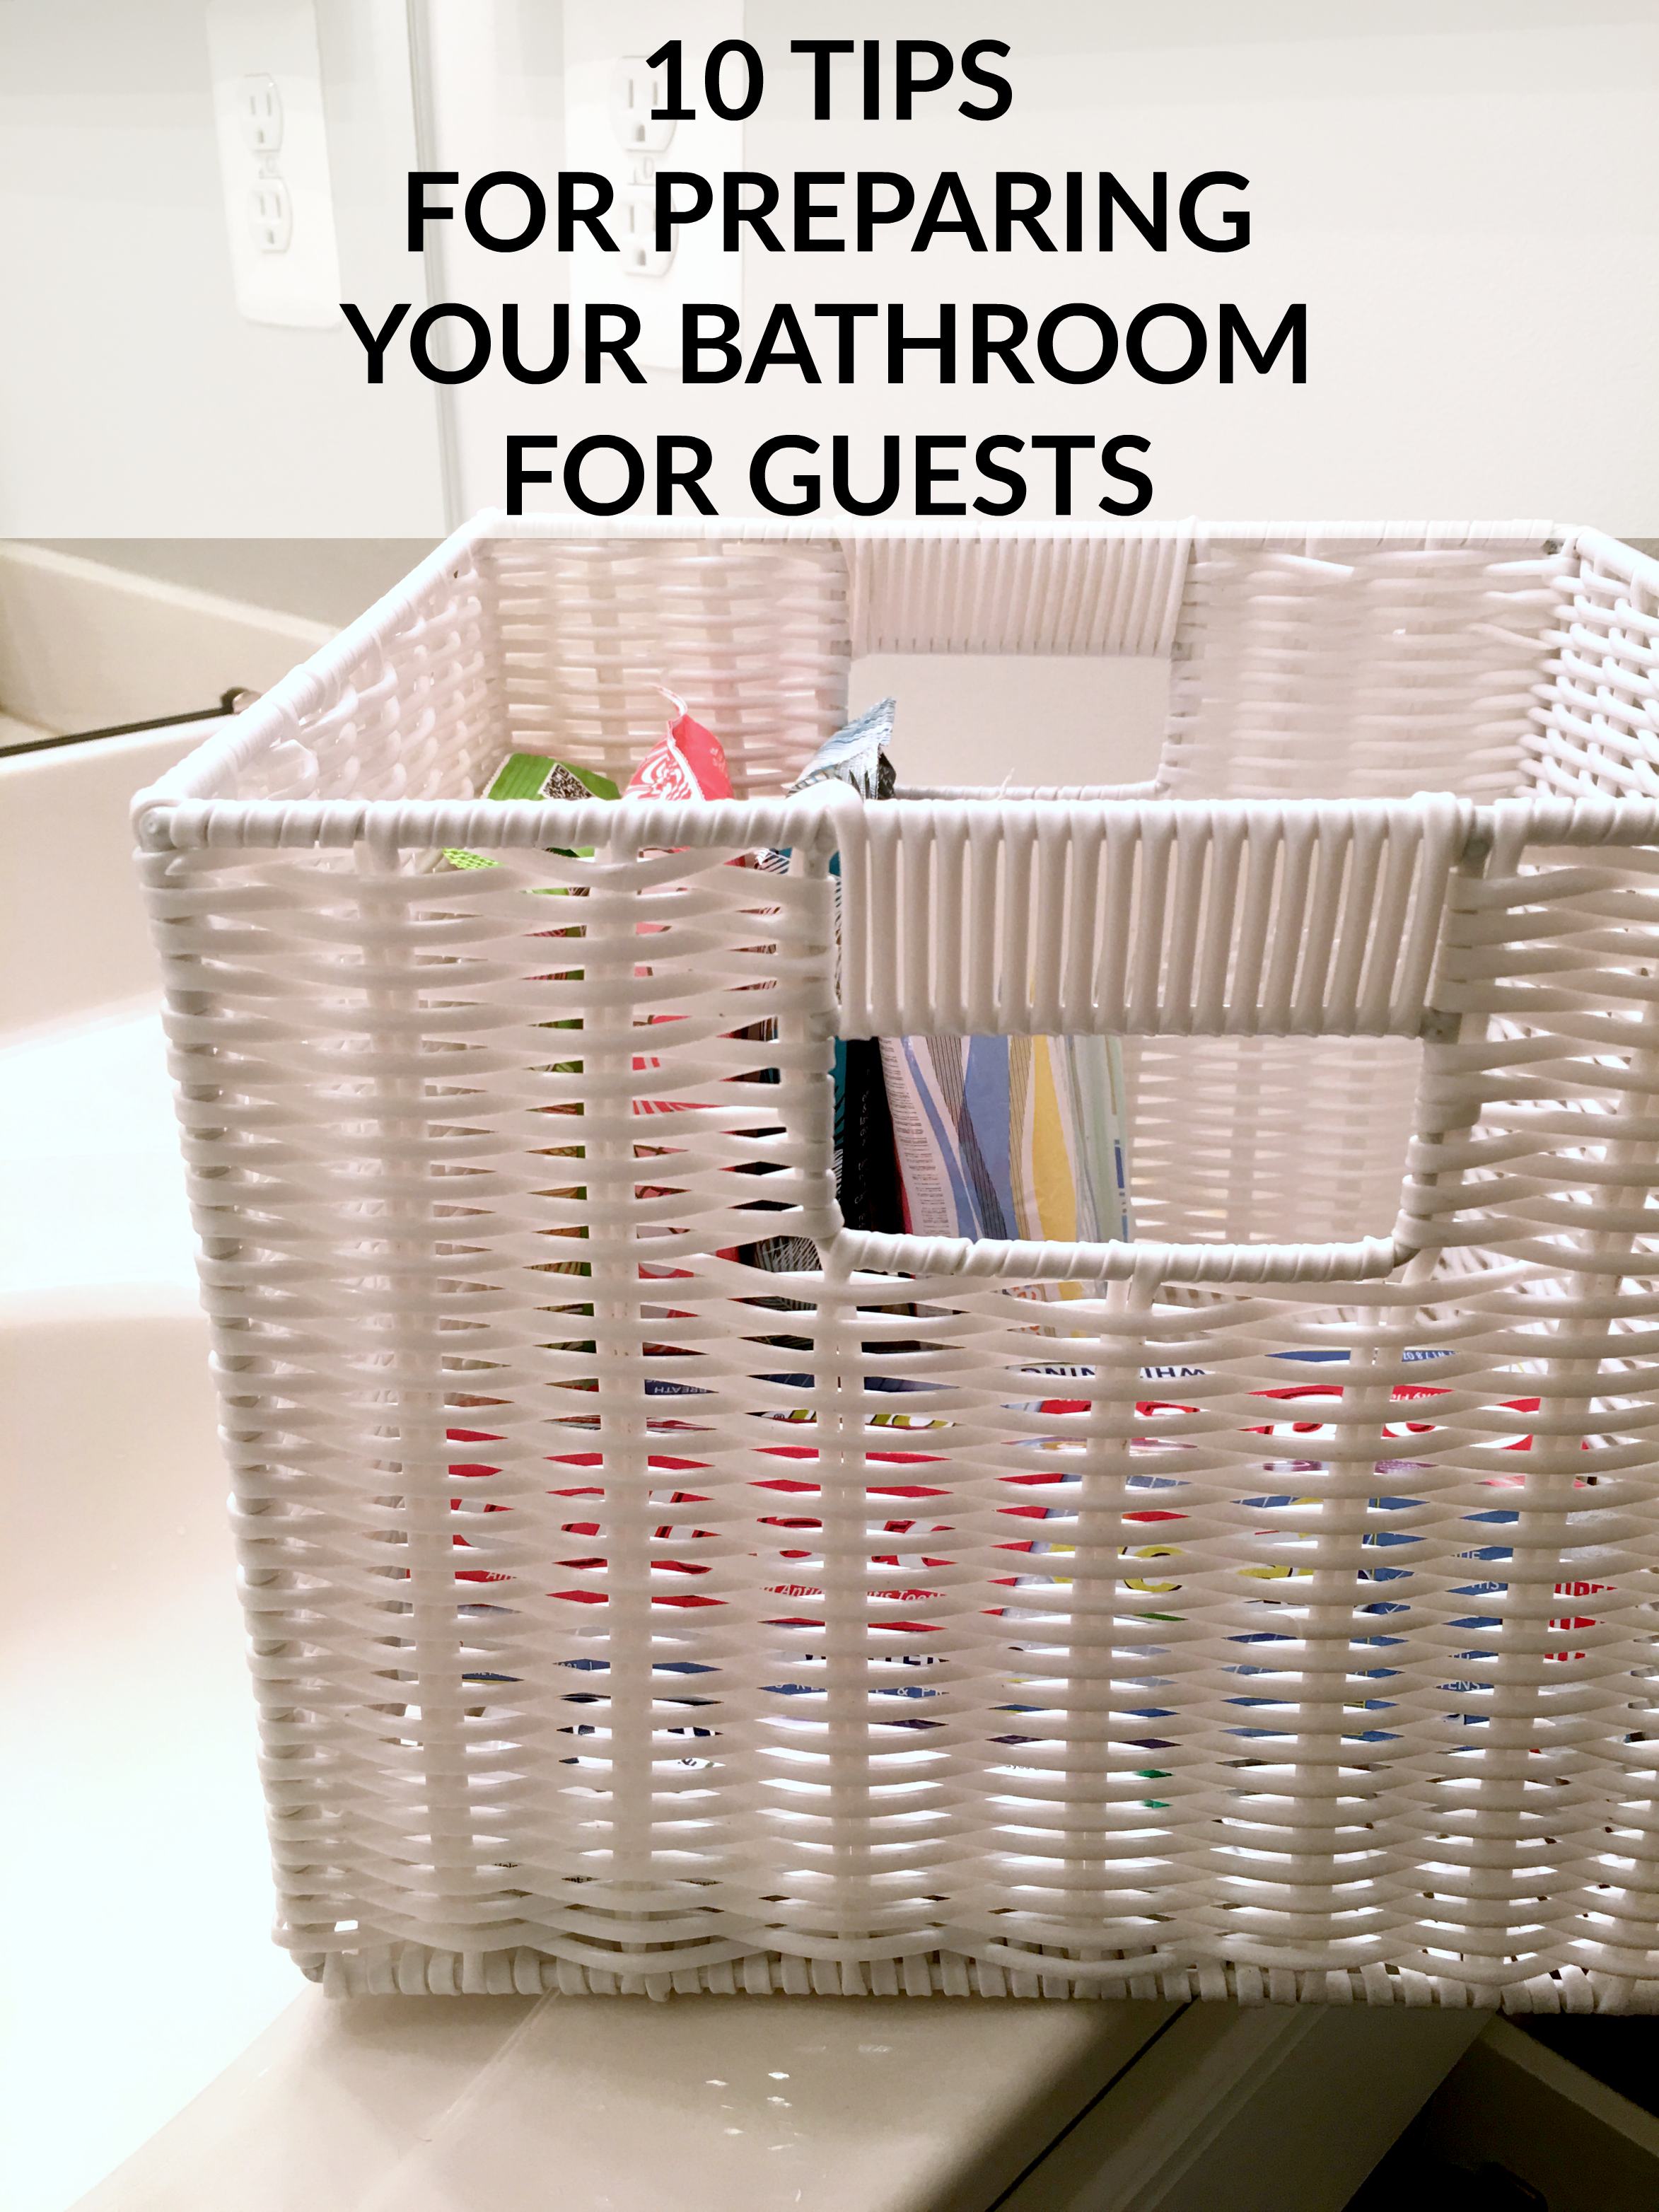 Tips for Preparing Your Bathroom for Guests